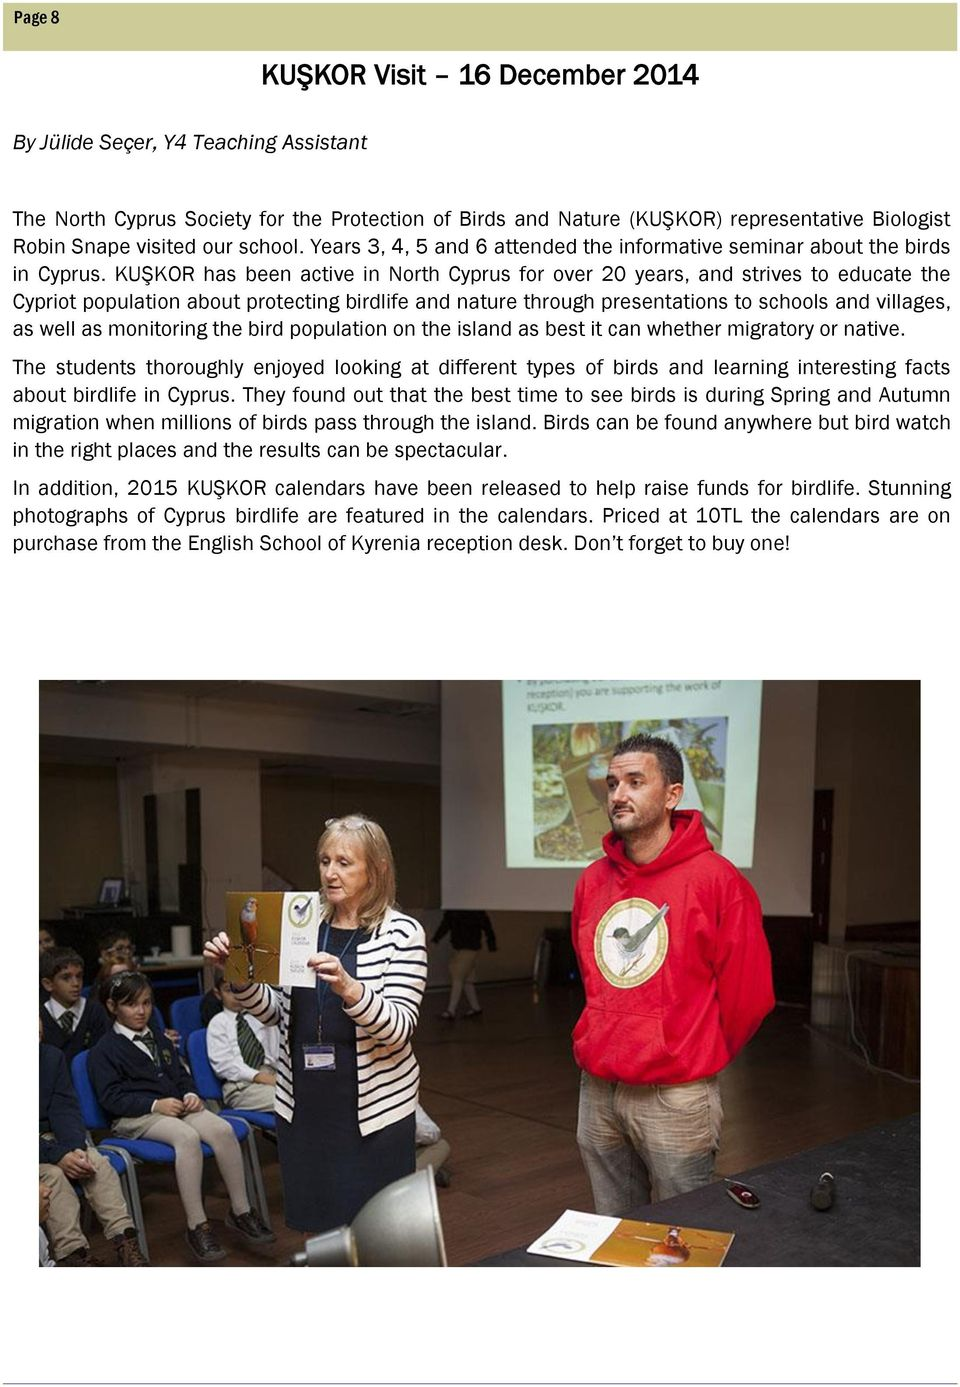 KUŞKOR has been active in North Cyprus for over 20 years, and strives to educate the Cypriot population about protecting birdlife and nature through presentations to schools and villages, as well as